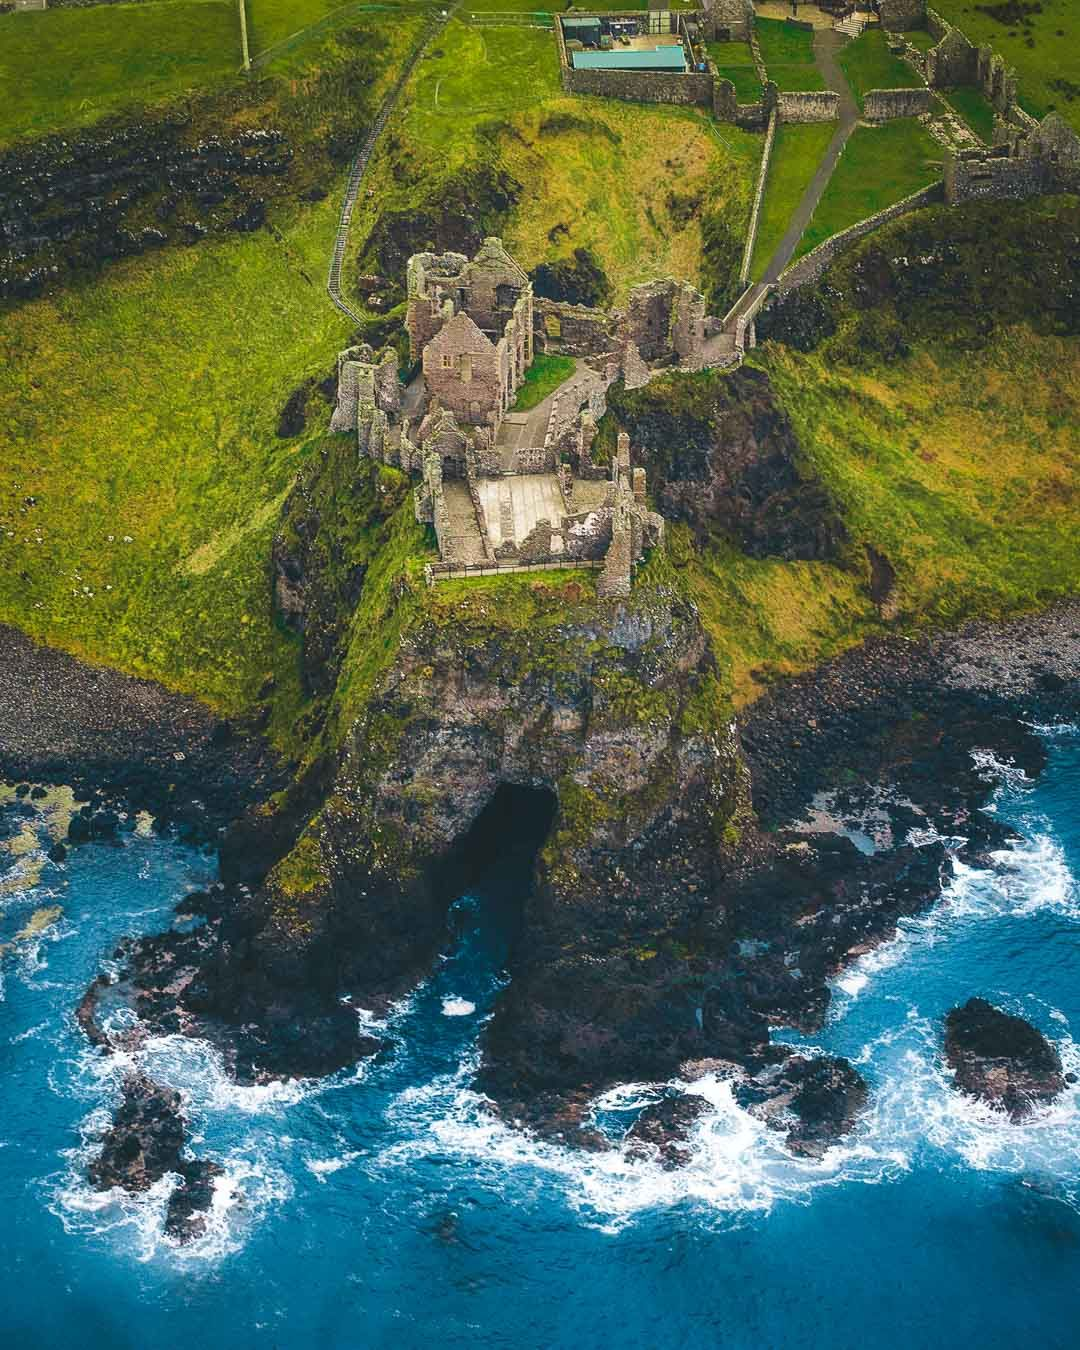 Dunluce Castle, Northern Ireland - Epic Medieval Castle on the Cliffs